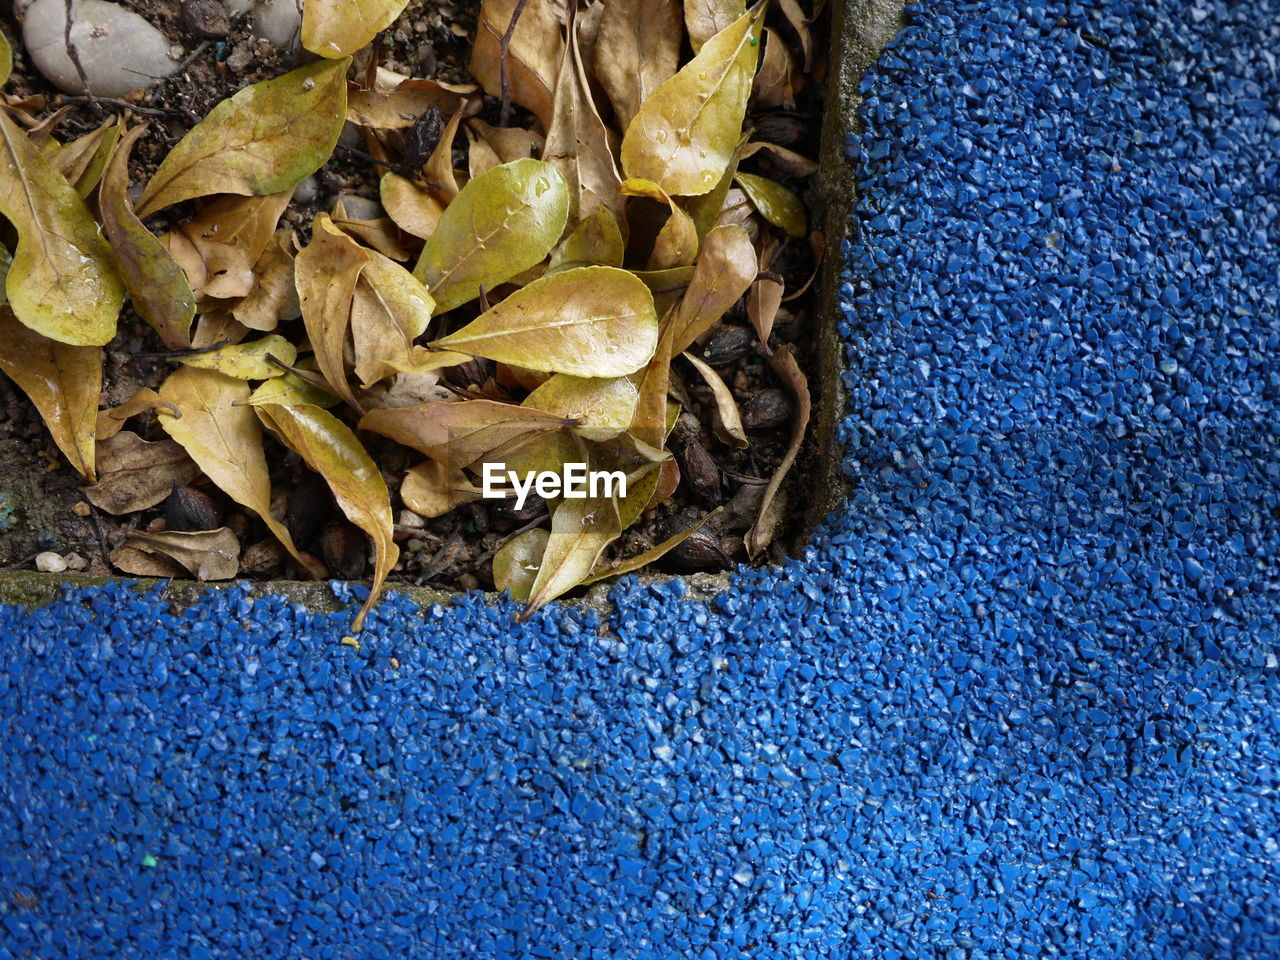 blue, high angle view, no people, food and drink, food, close-up, large group of objects, still life, plant part, day, leaf, freshness, indoors, directly above, textile, healthy eating, textured, abundance, nature, backgrounds, dried